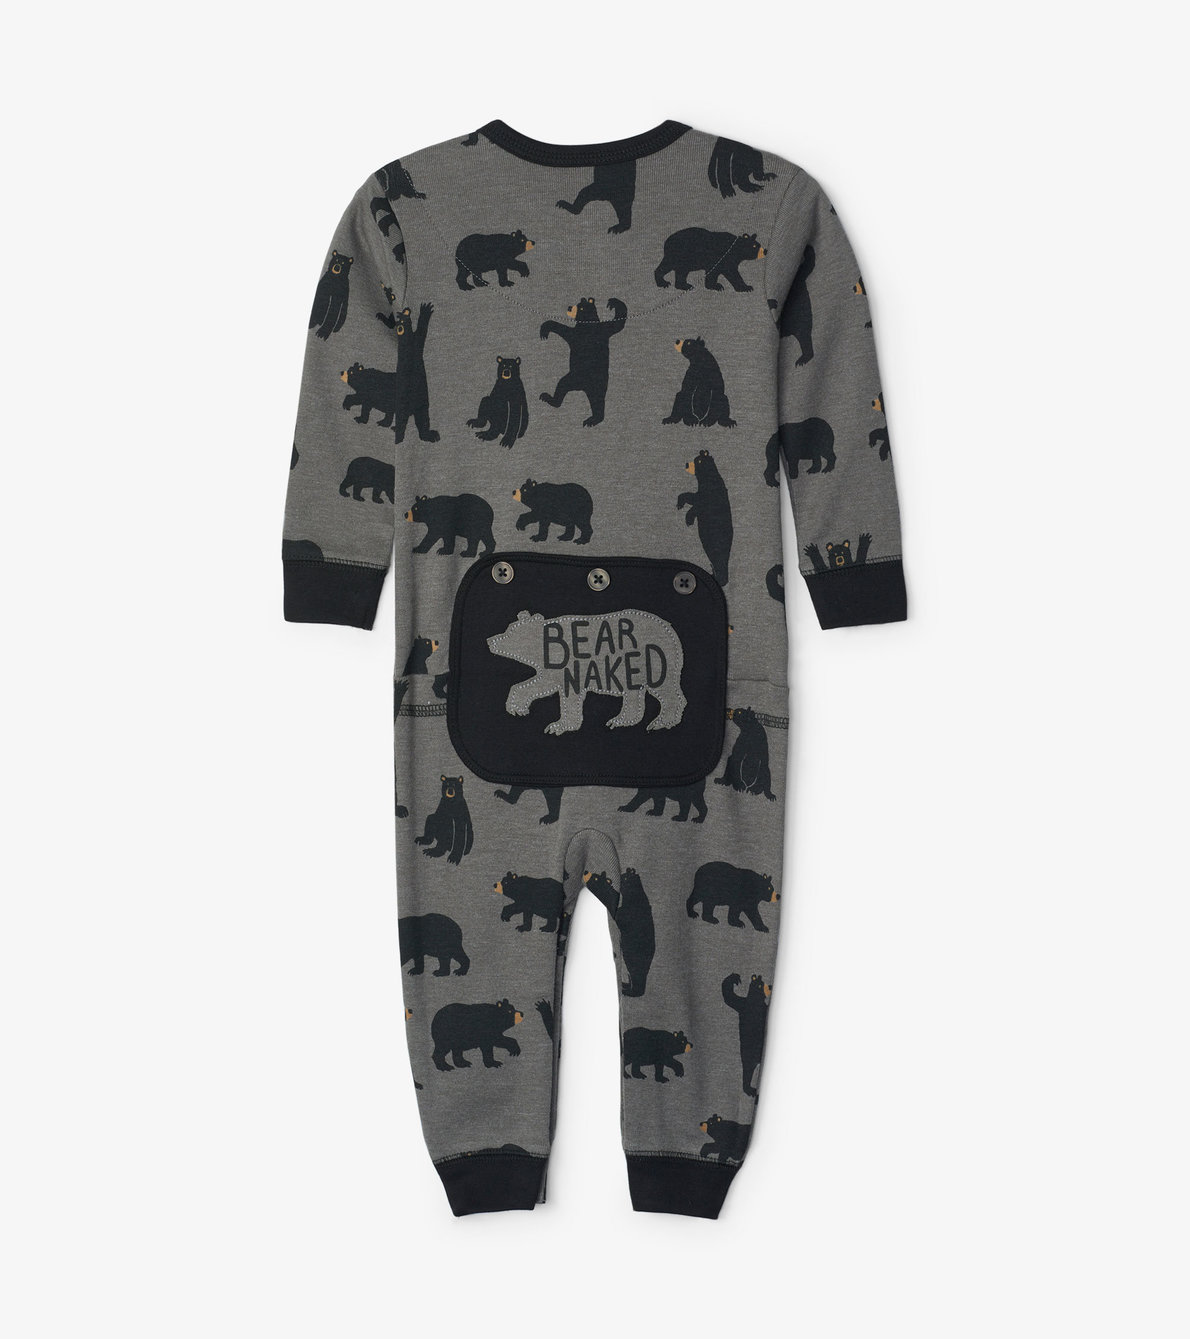 View larger image of Charcoal Bears Baby Union Suit